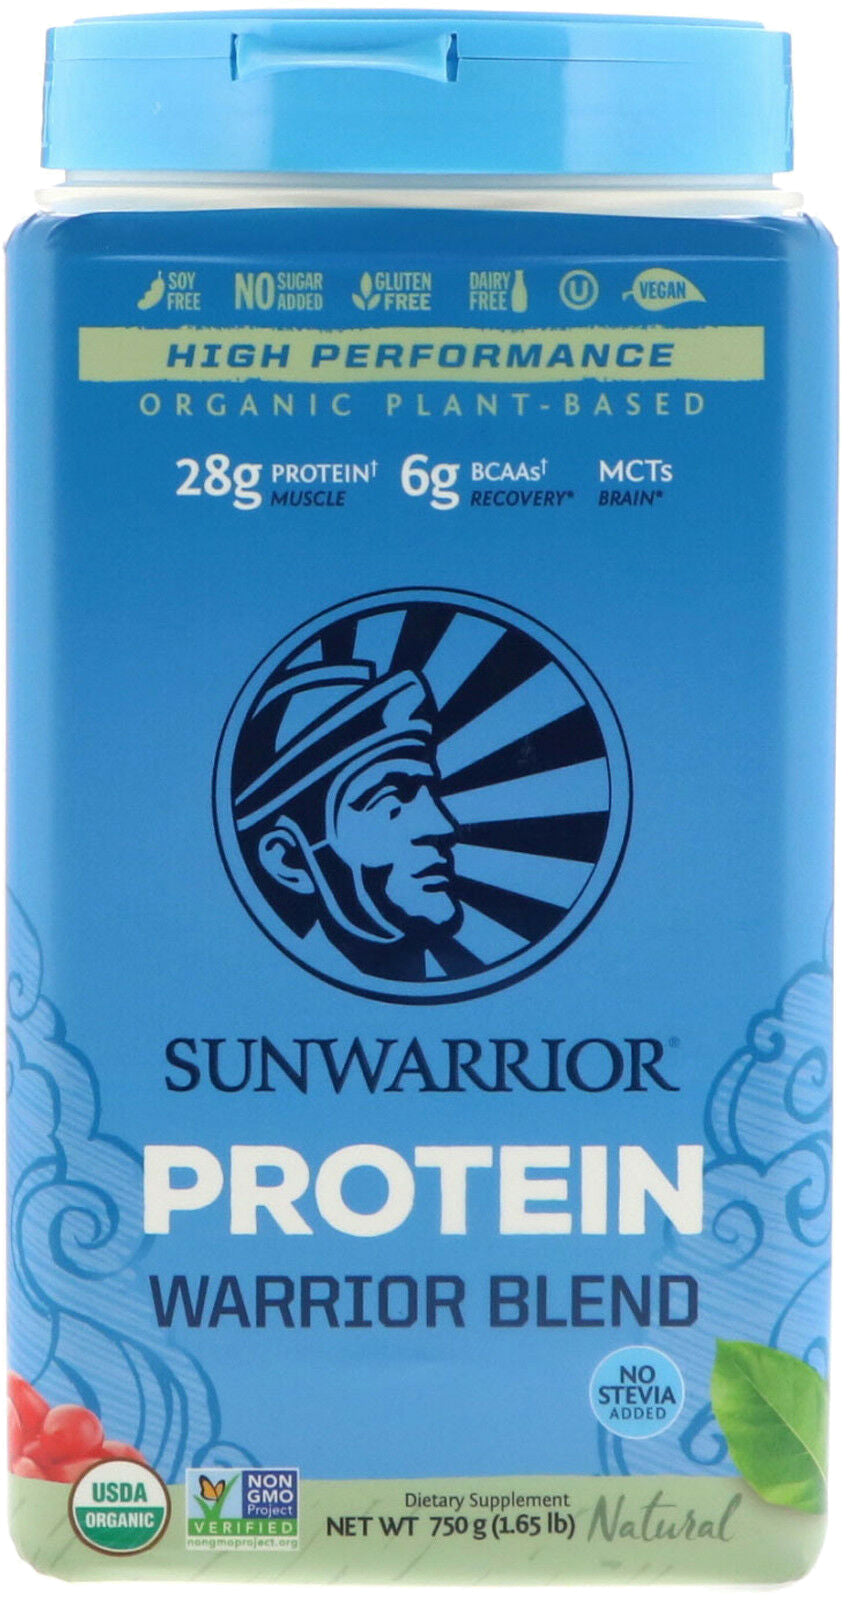 Organic Plant-Based Warrior Blend Protein, 28 g of Protein per Serving with 6 g of BCAAs and MCTs, Unflavored, 1.65 Lb (750 g) Powder